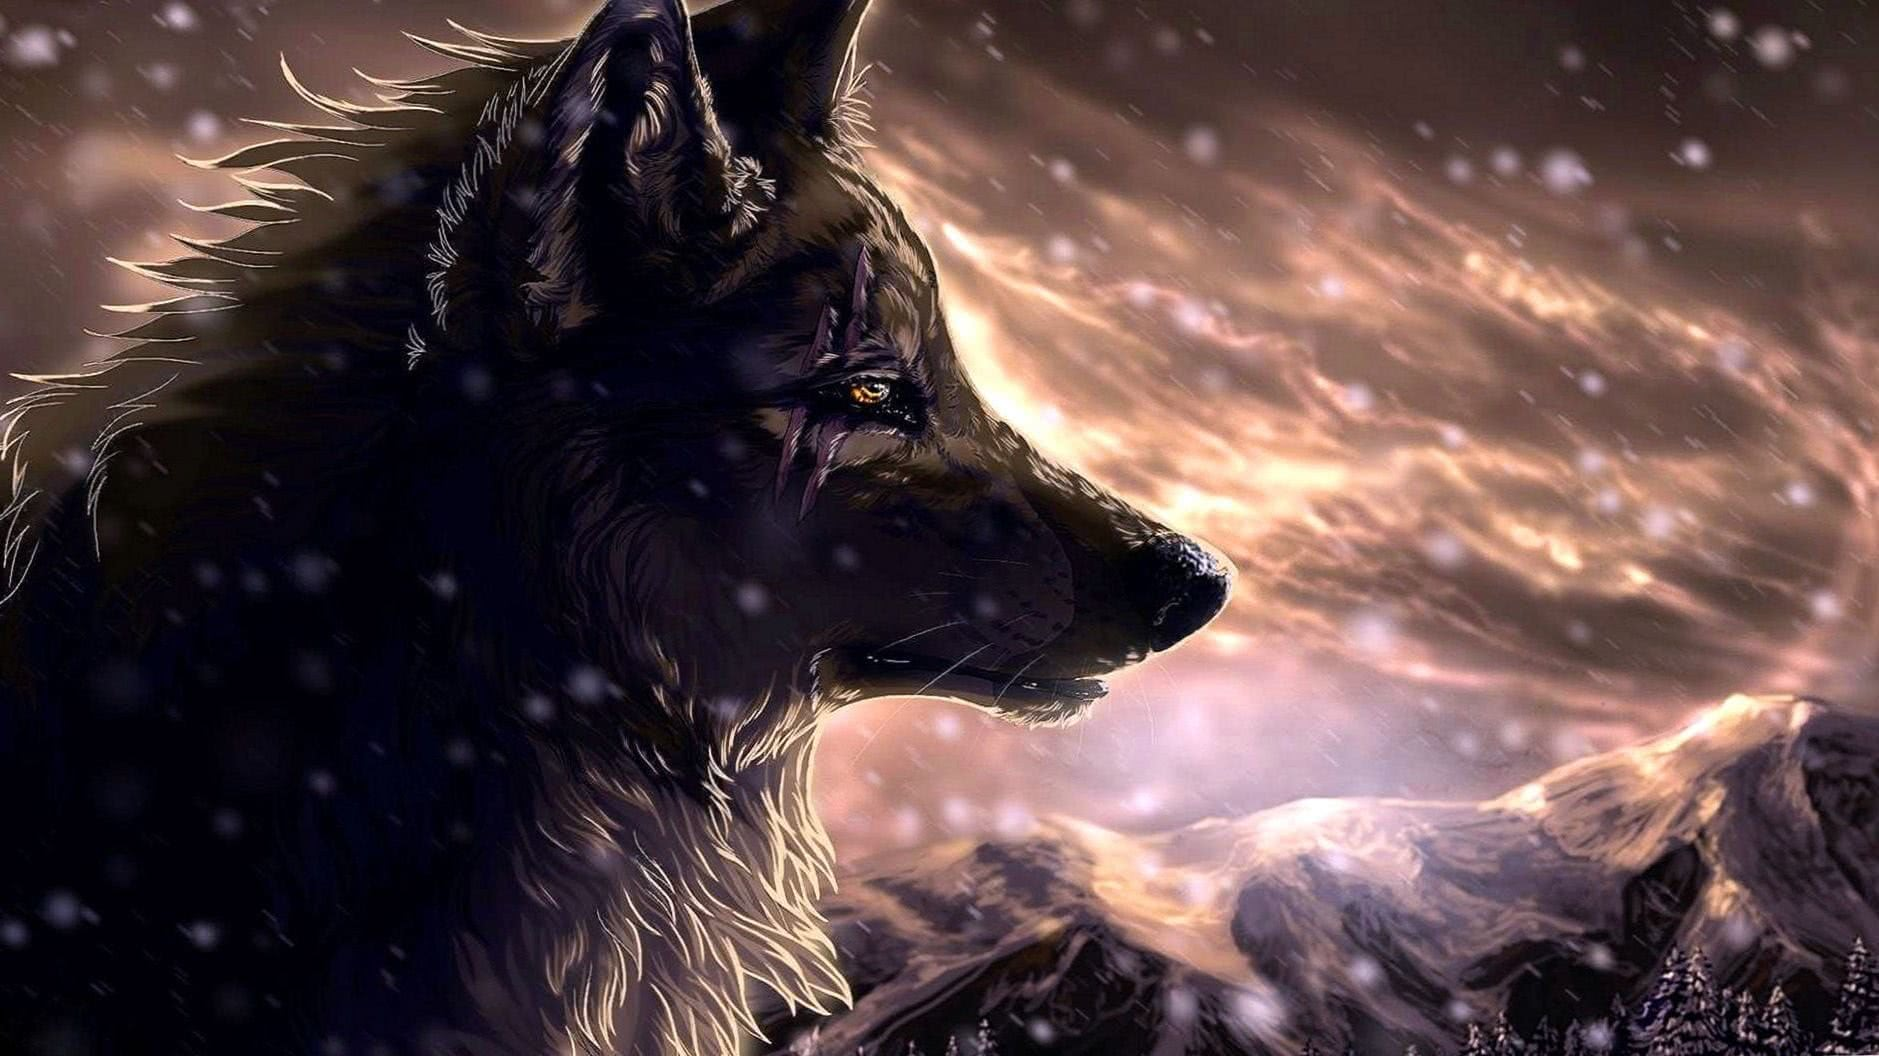 Cool Wallpaper Of Wolf